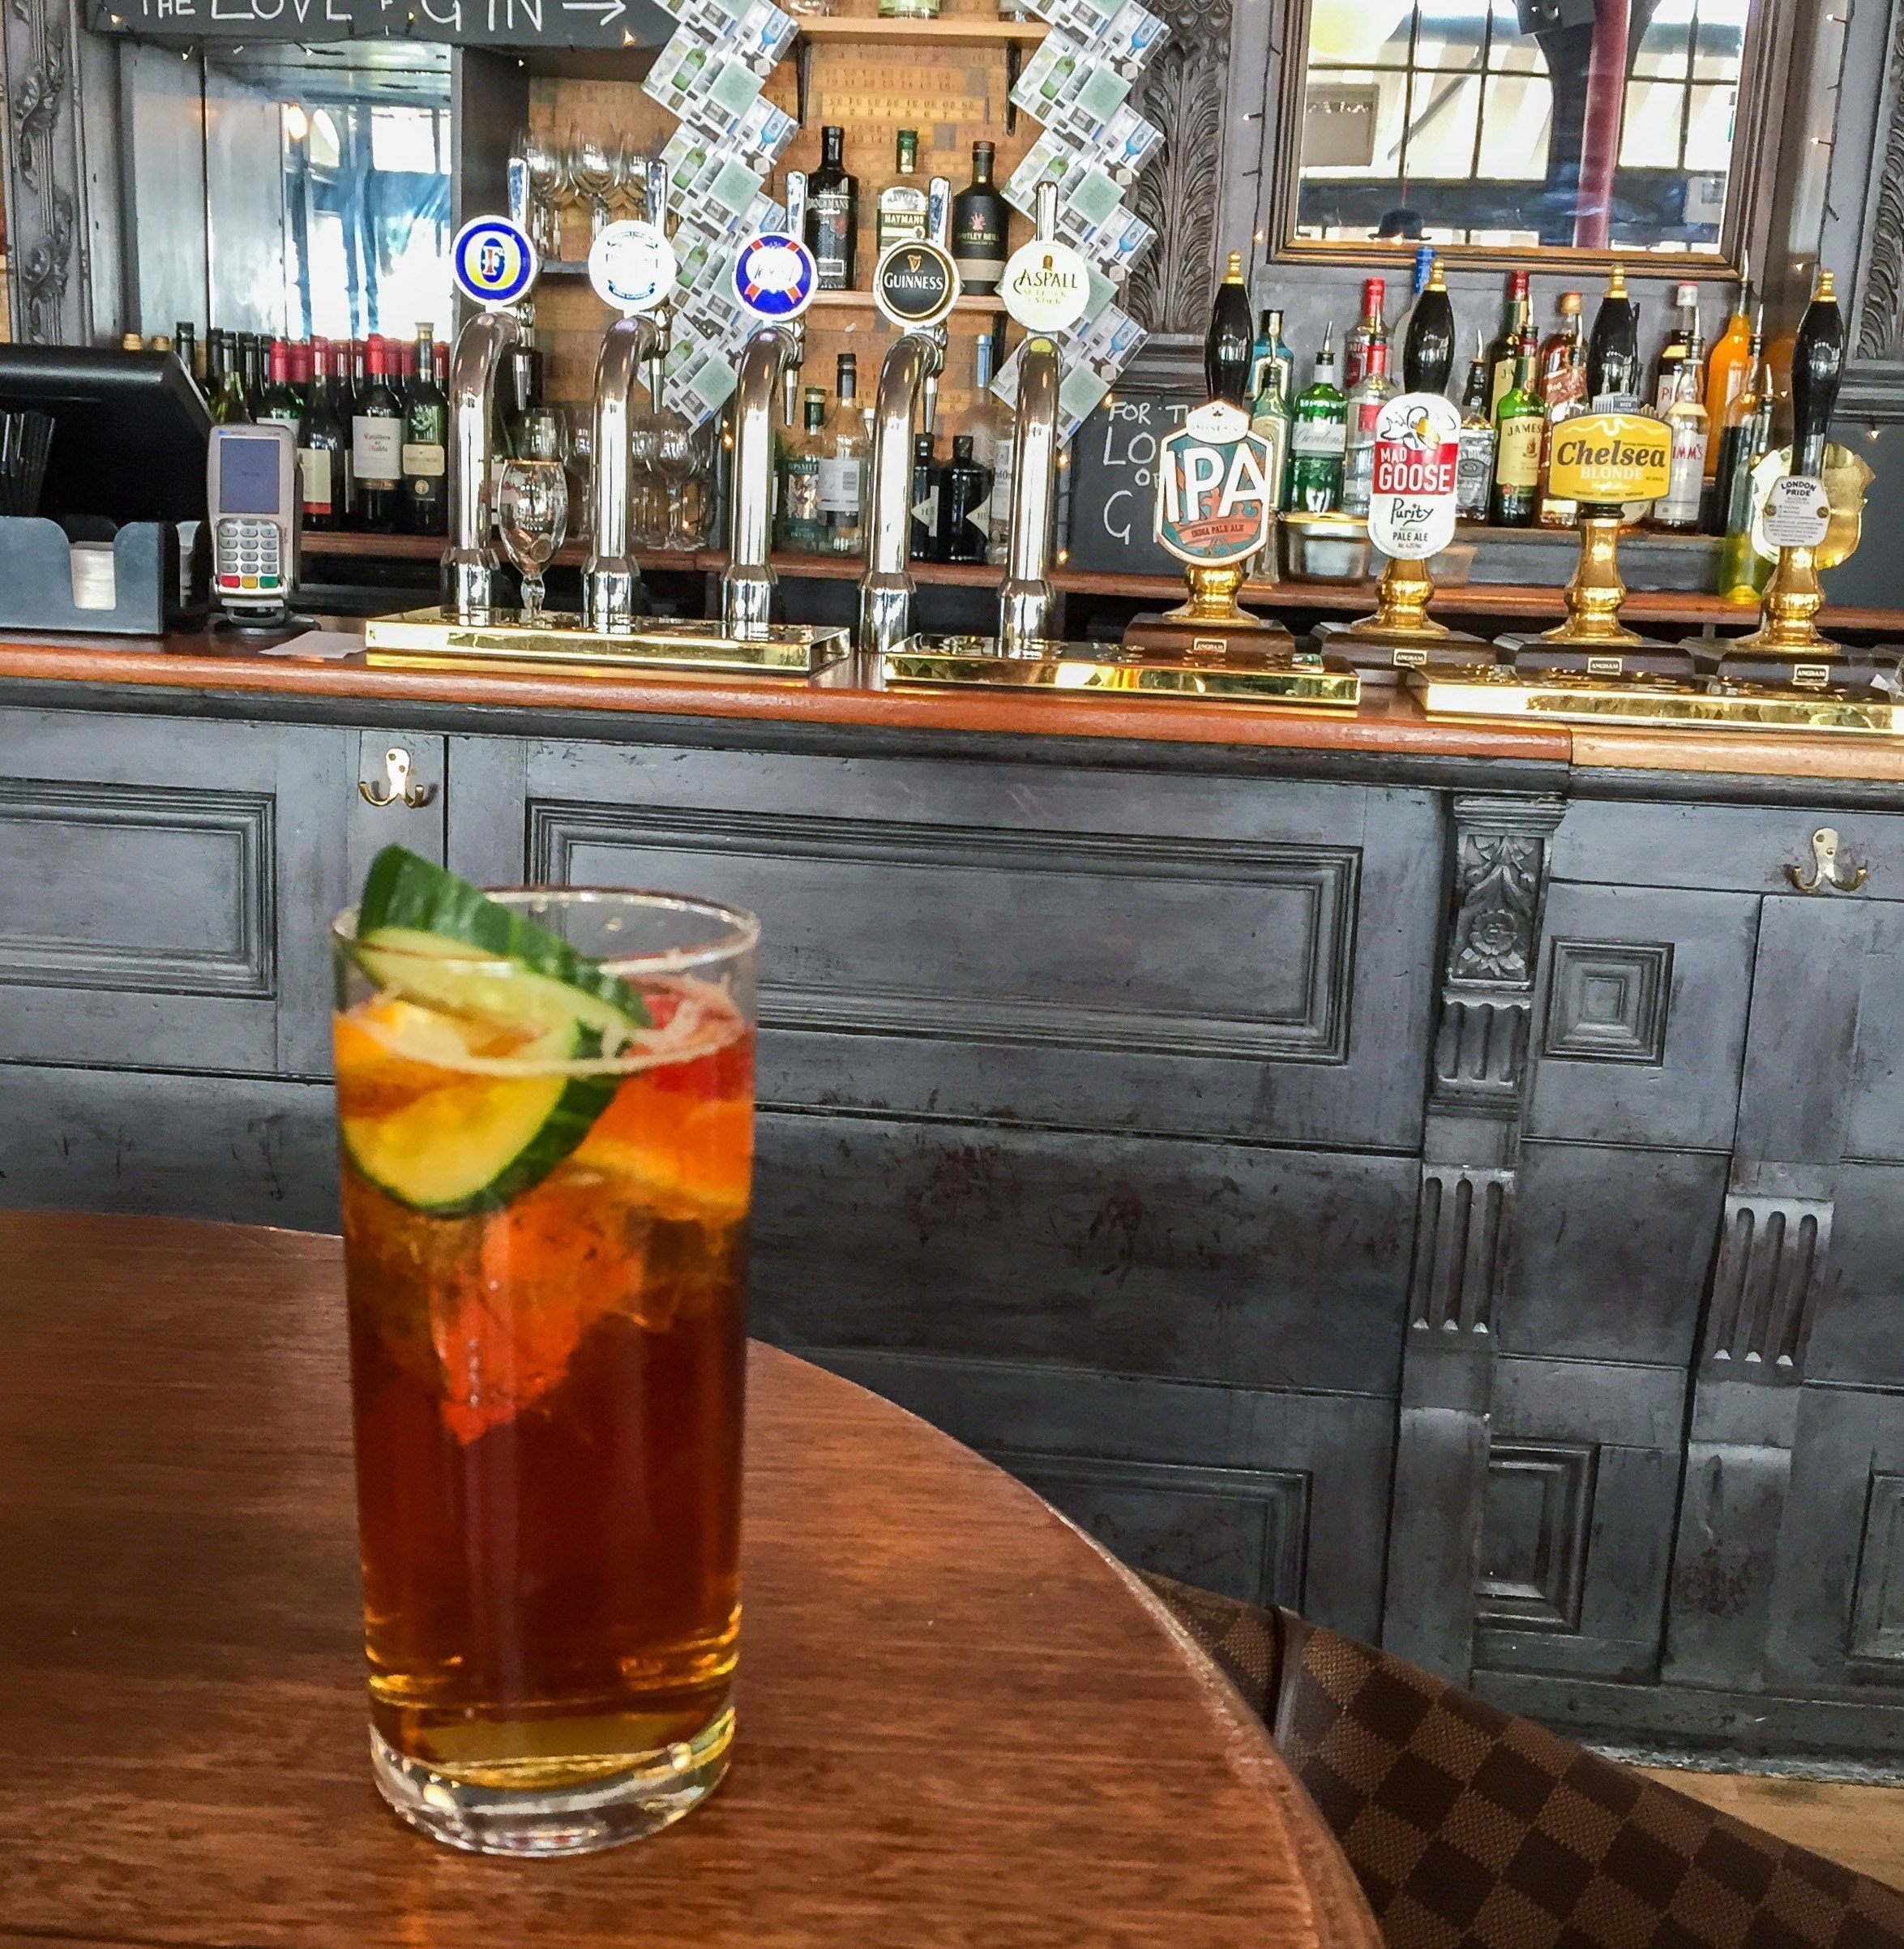 A Pimm's cup at the Chelsea Potter in London on the King's Road. This local pub was a favorite of Jimi Hendrix and the Rolling Stones.